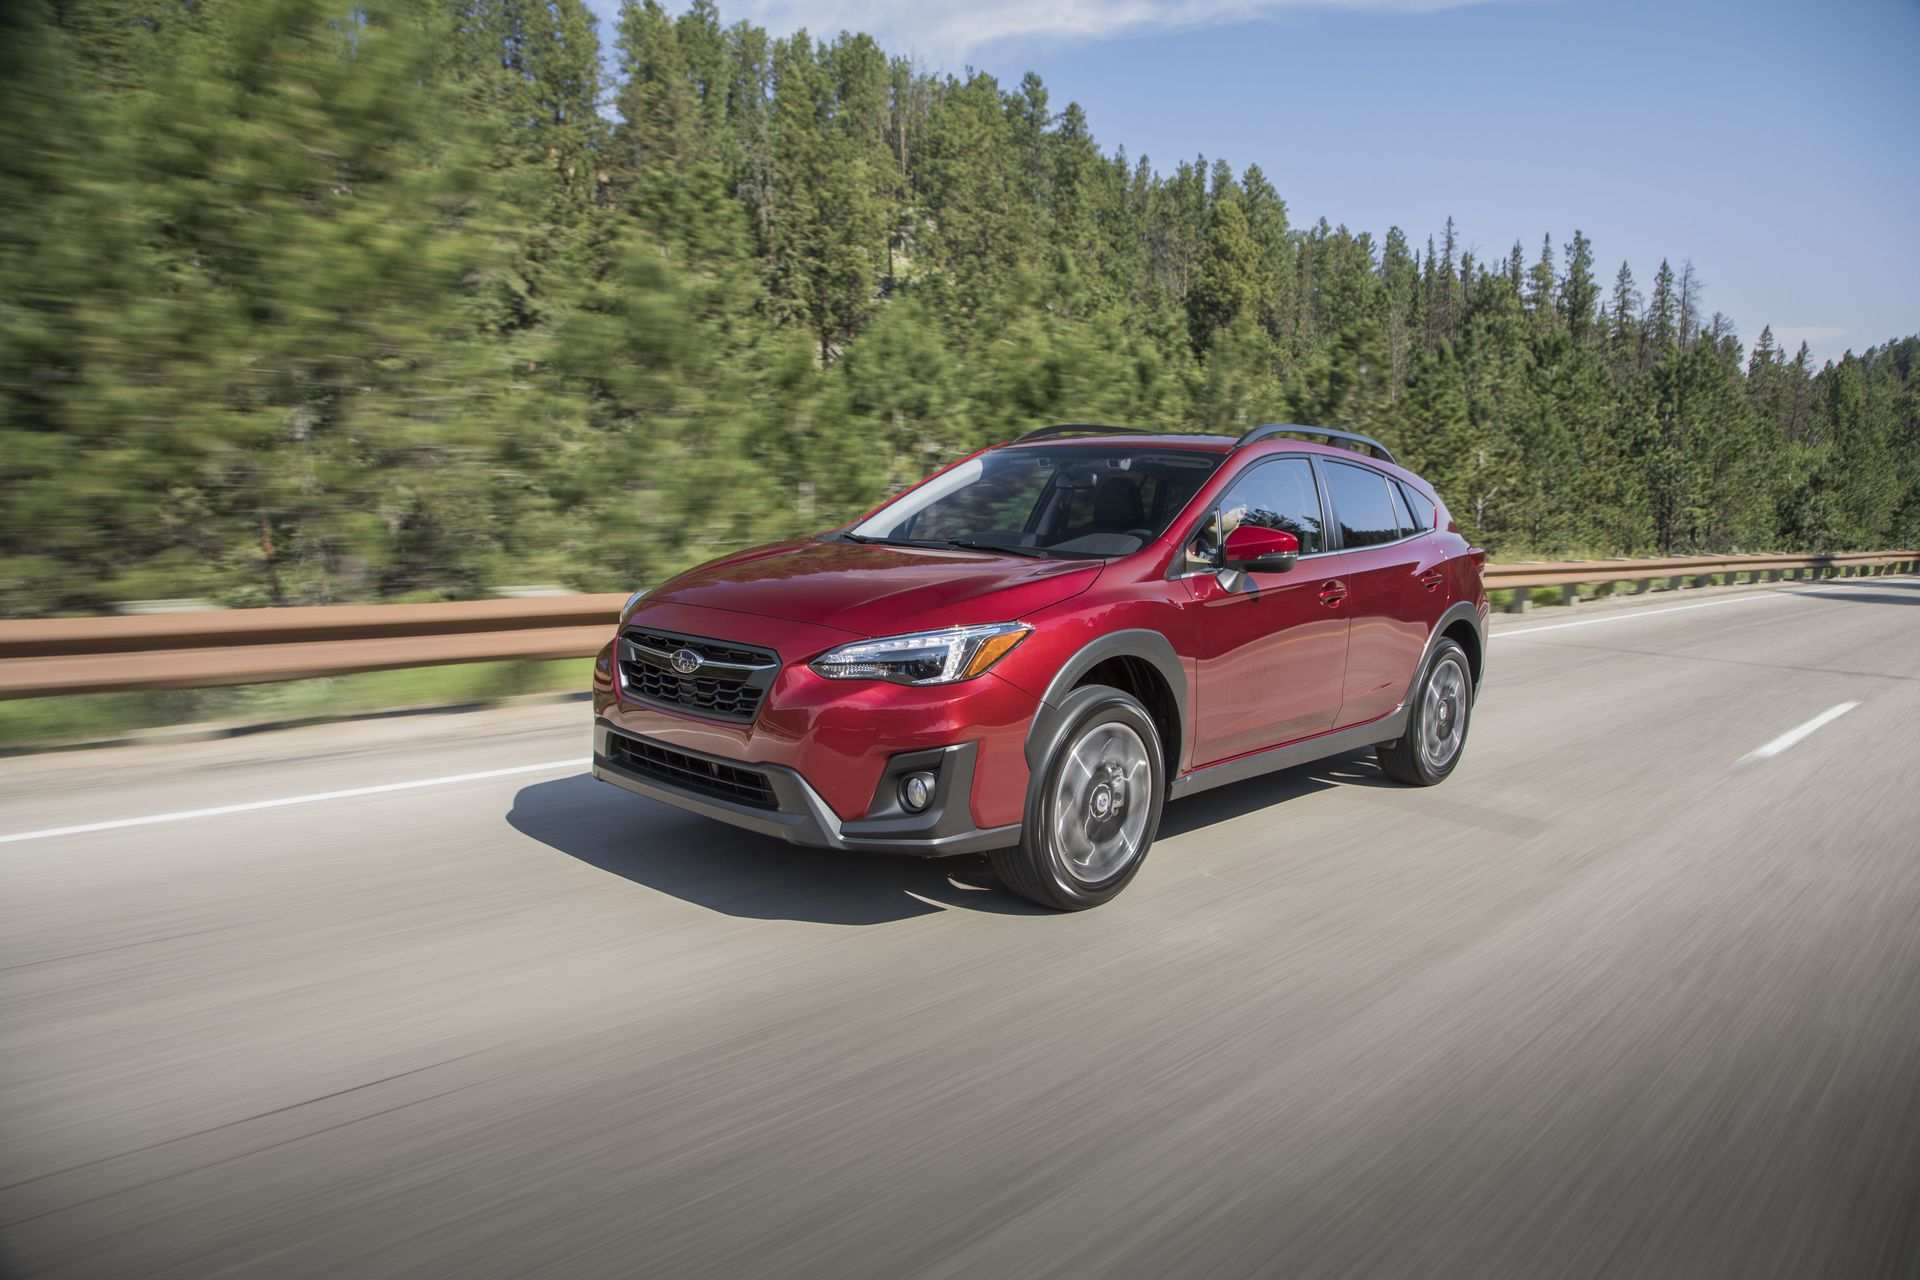 98 Best Review 2019 Subaru Phev Interior by 2019 Subaru Phev